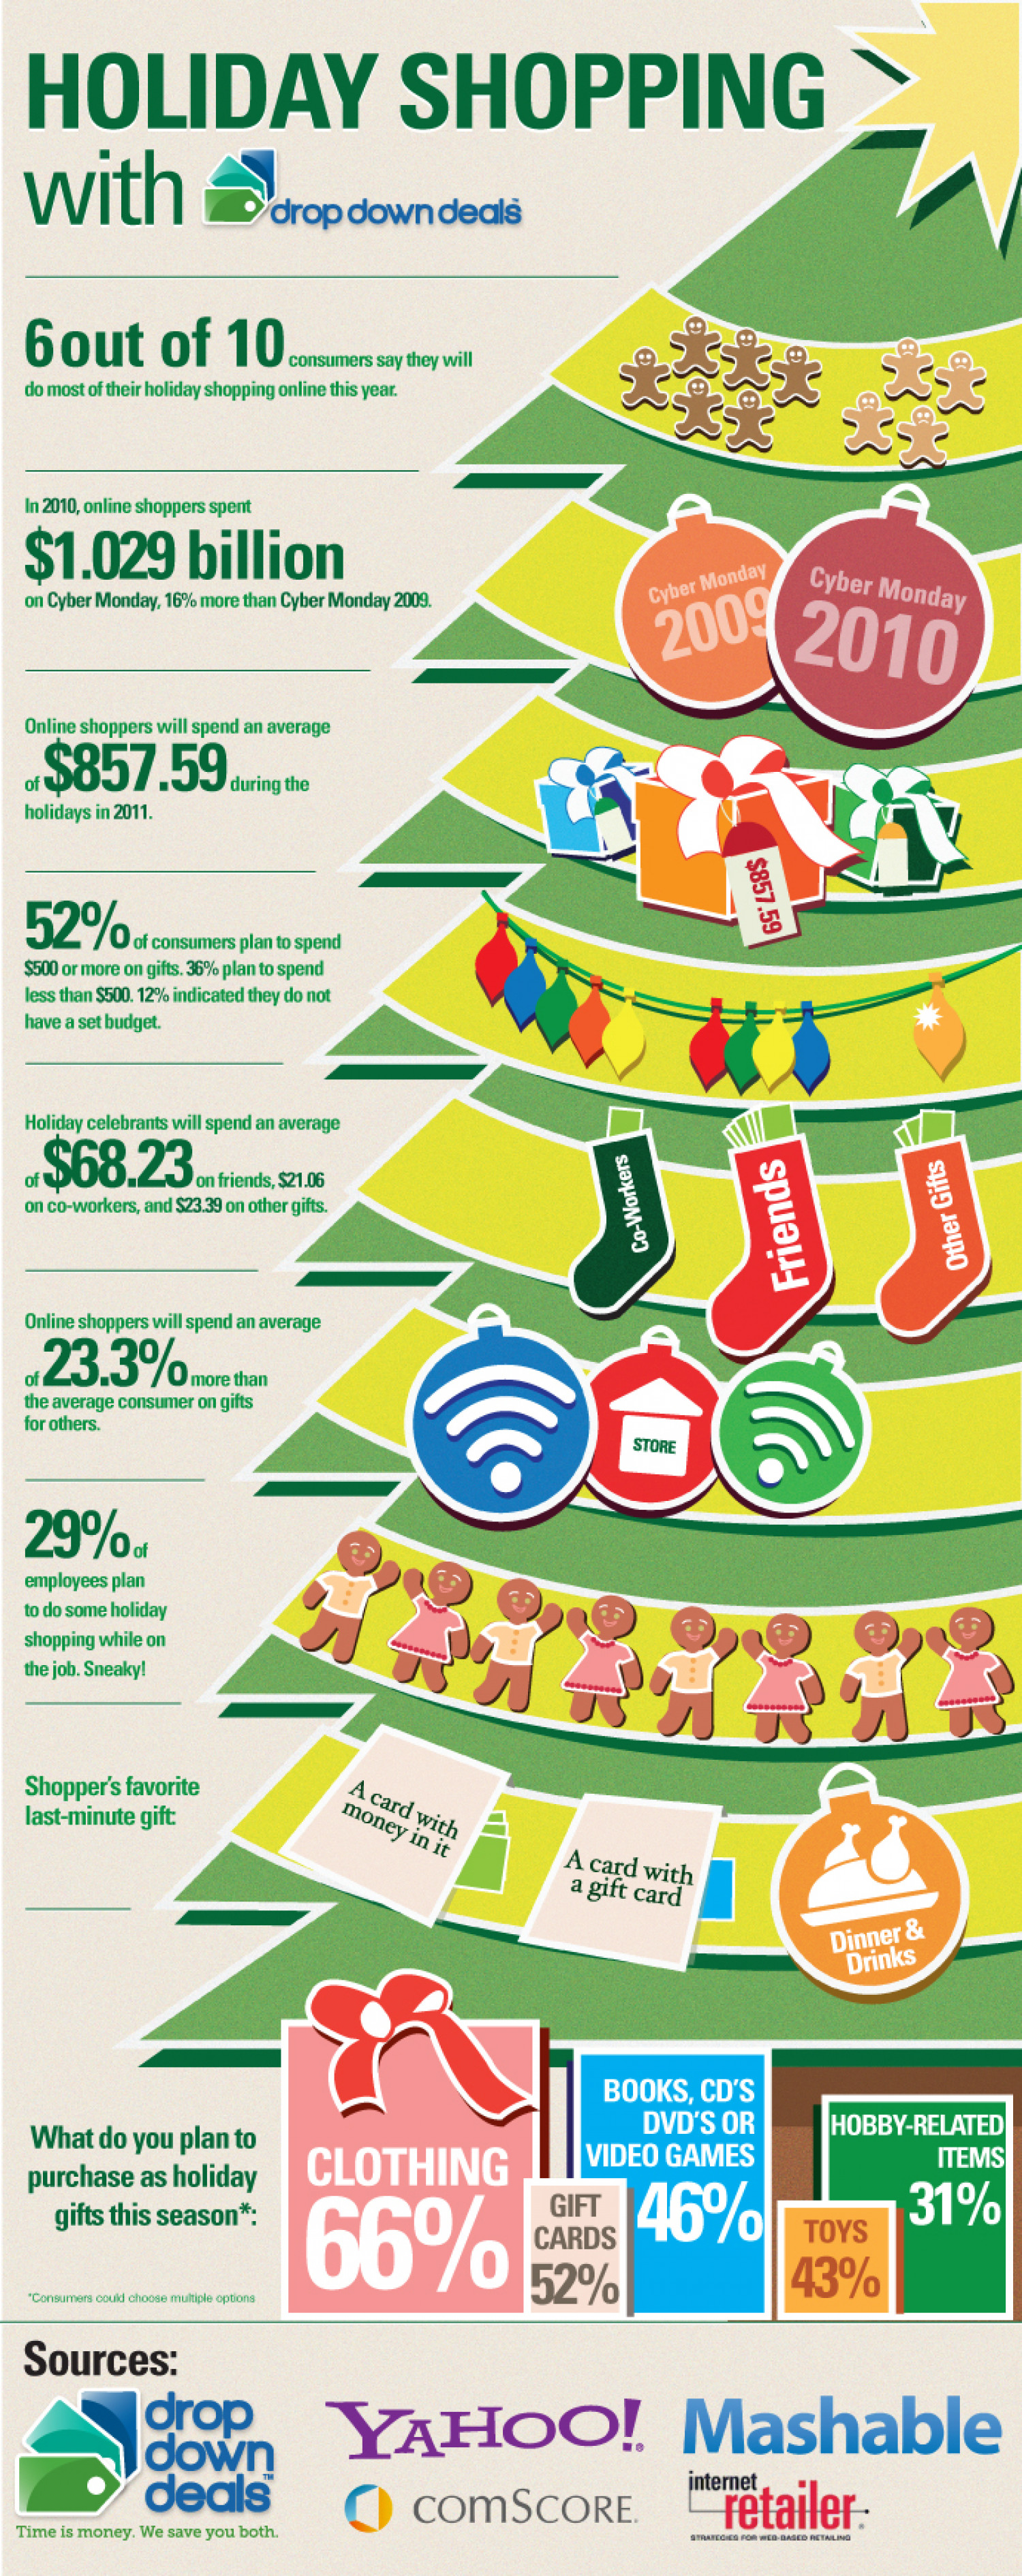 Holiday Online Shopping 2011 Predictions Infographic